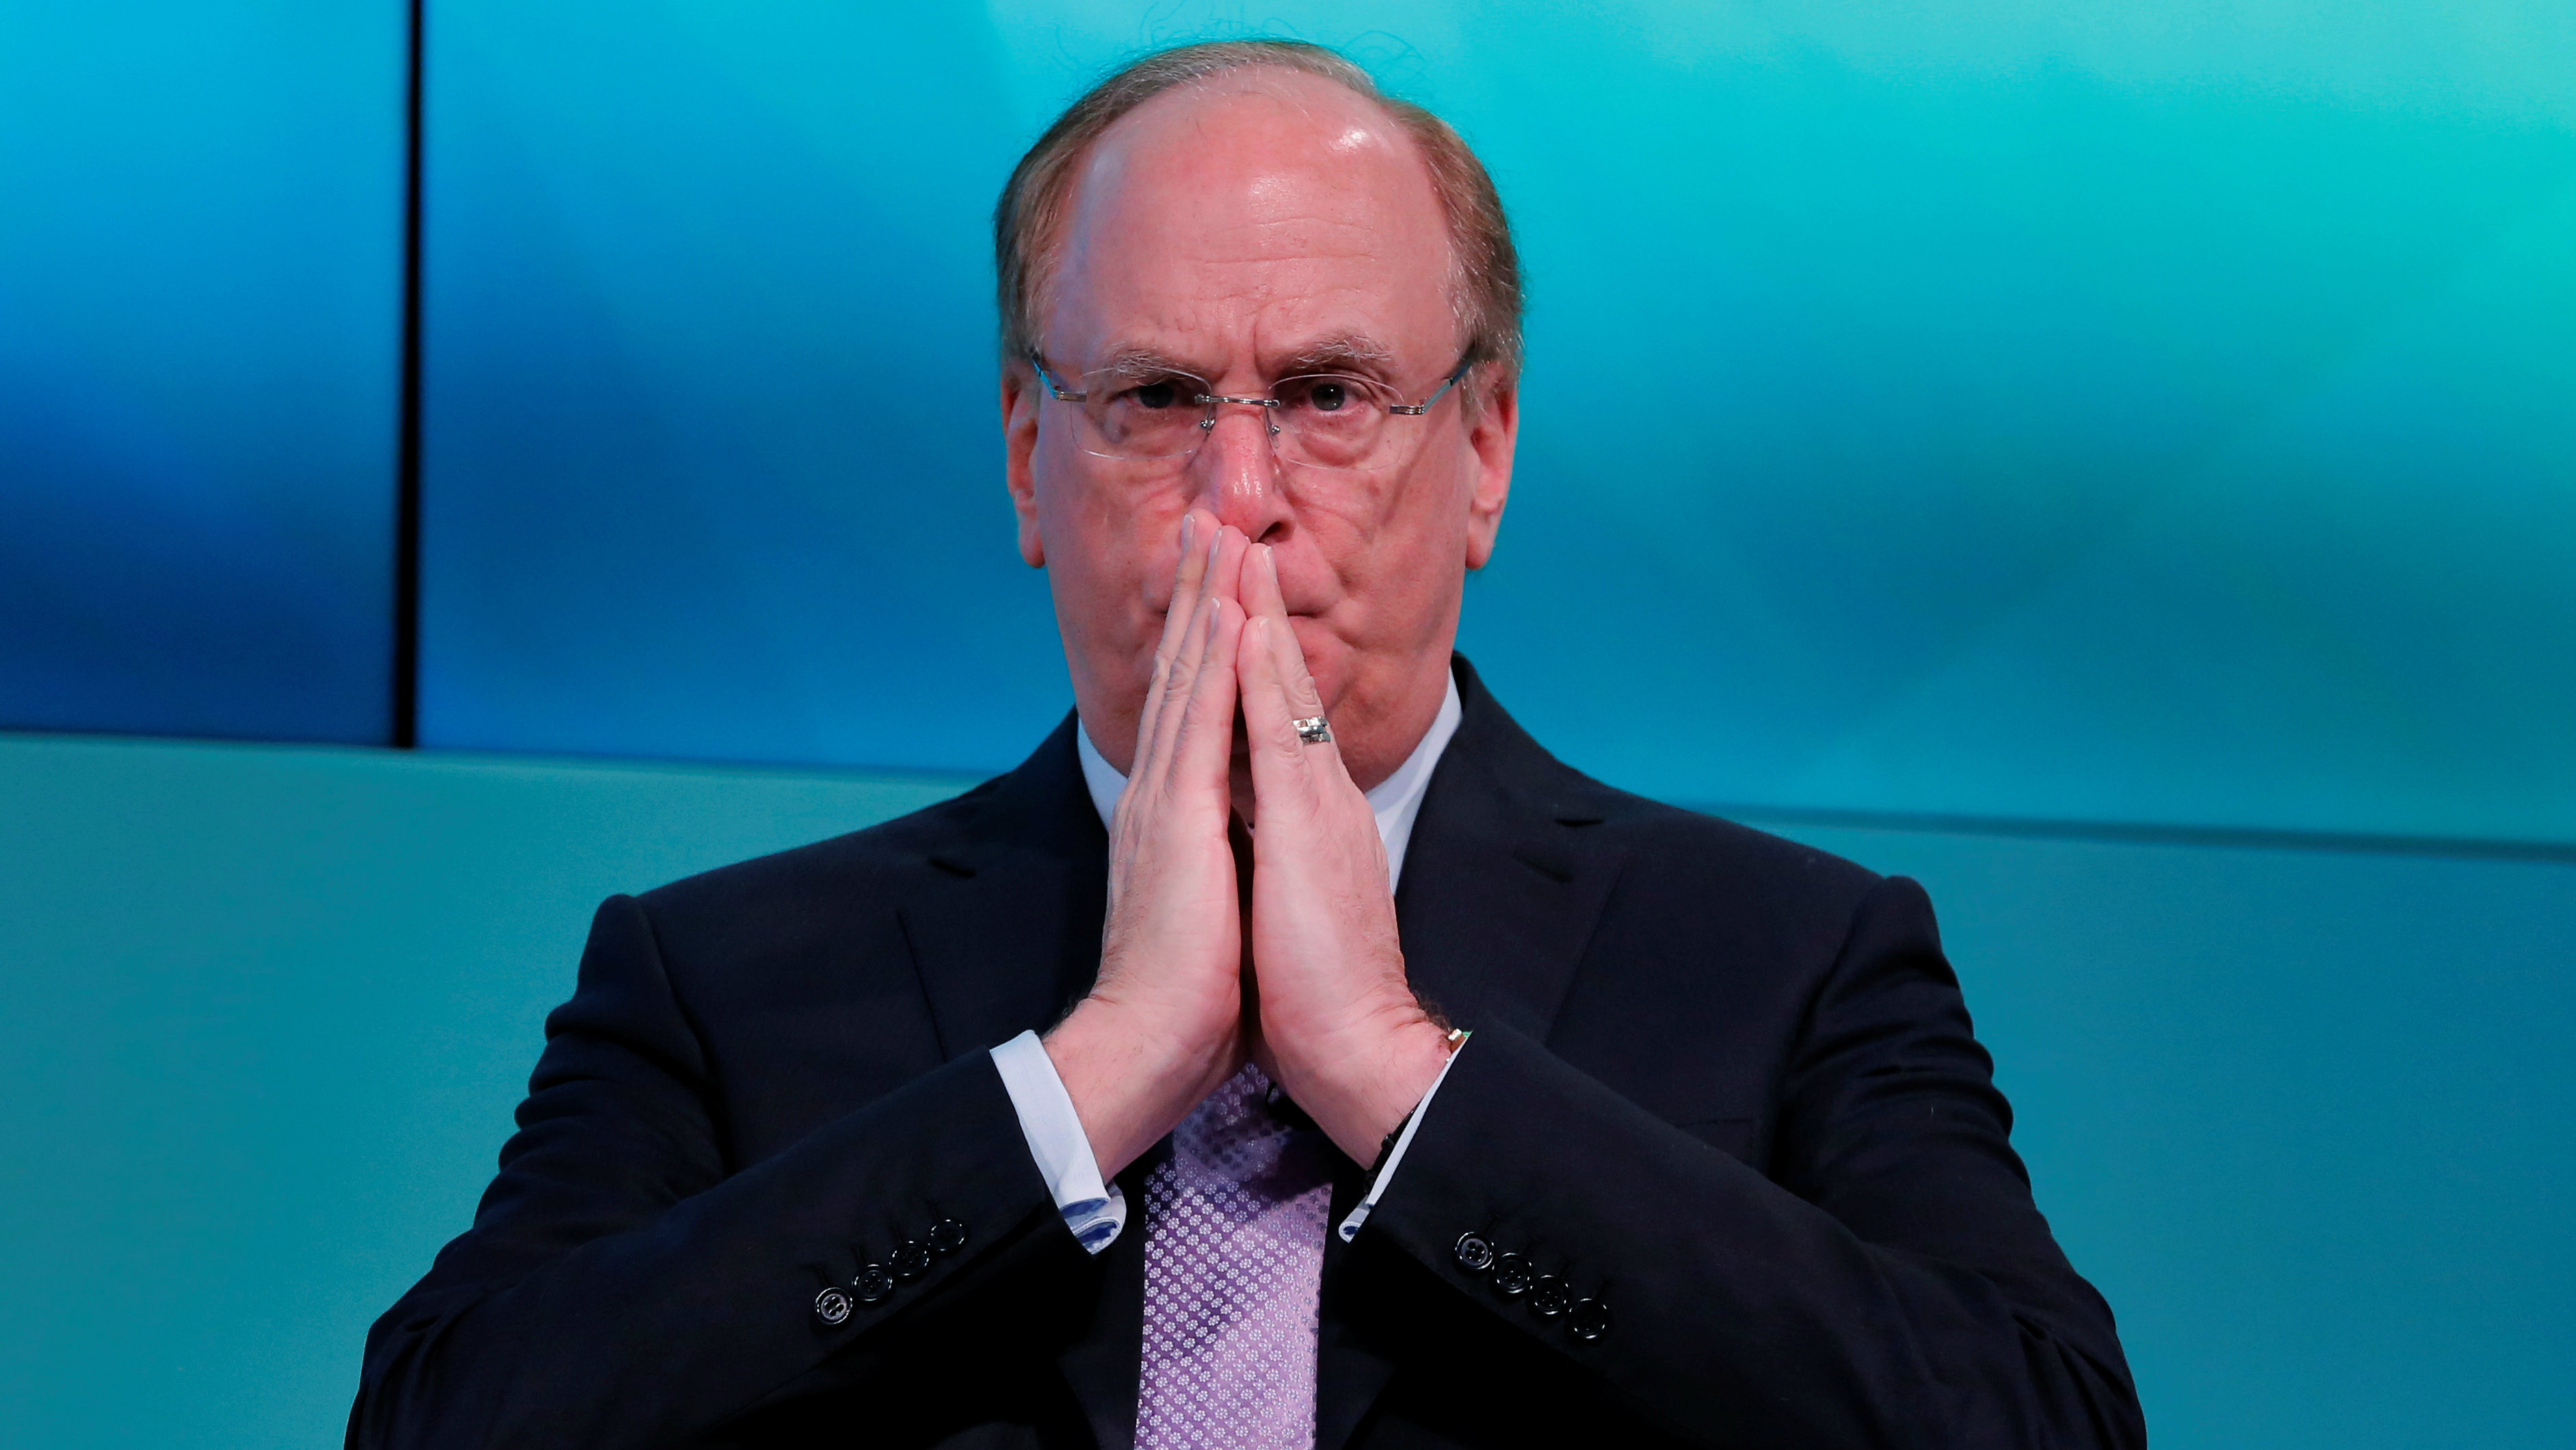 Larry Fink, Chief Executive Officer of BlackRock, takes part in the Yahoo Finance All Markets Summit in New York, U.S., February 8, 2017.